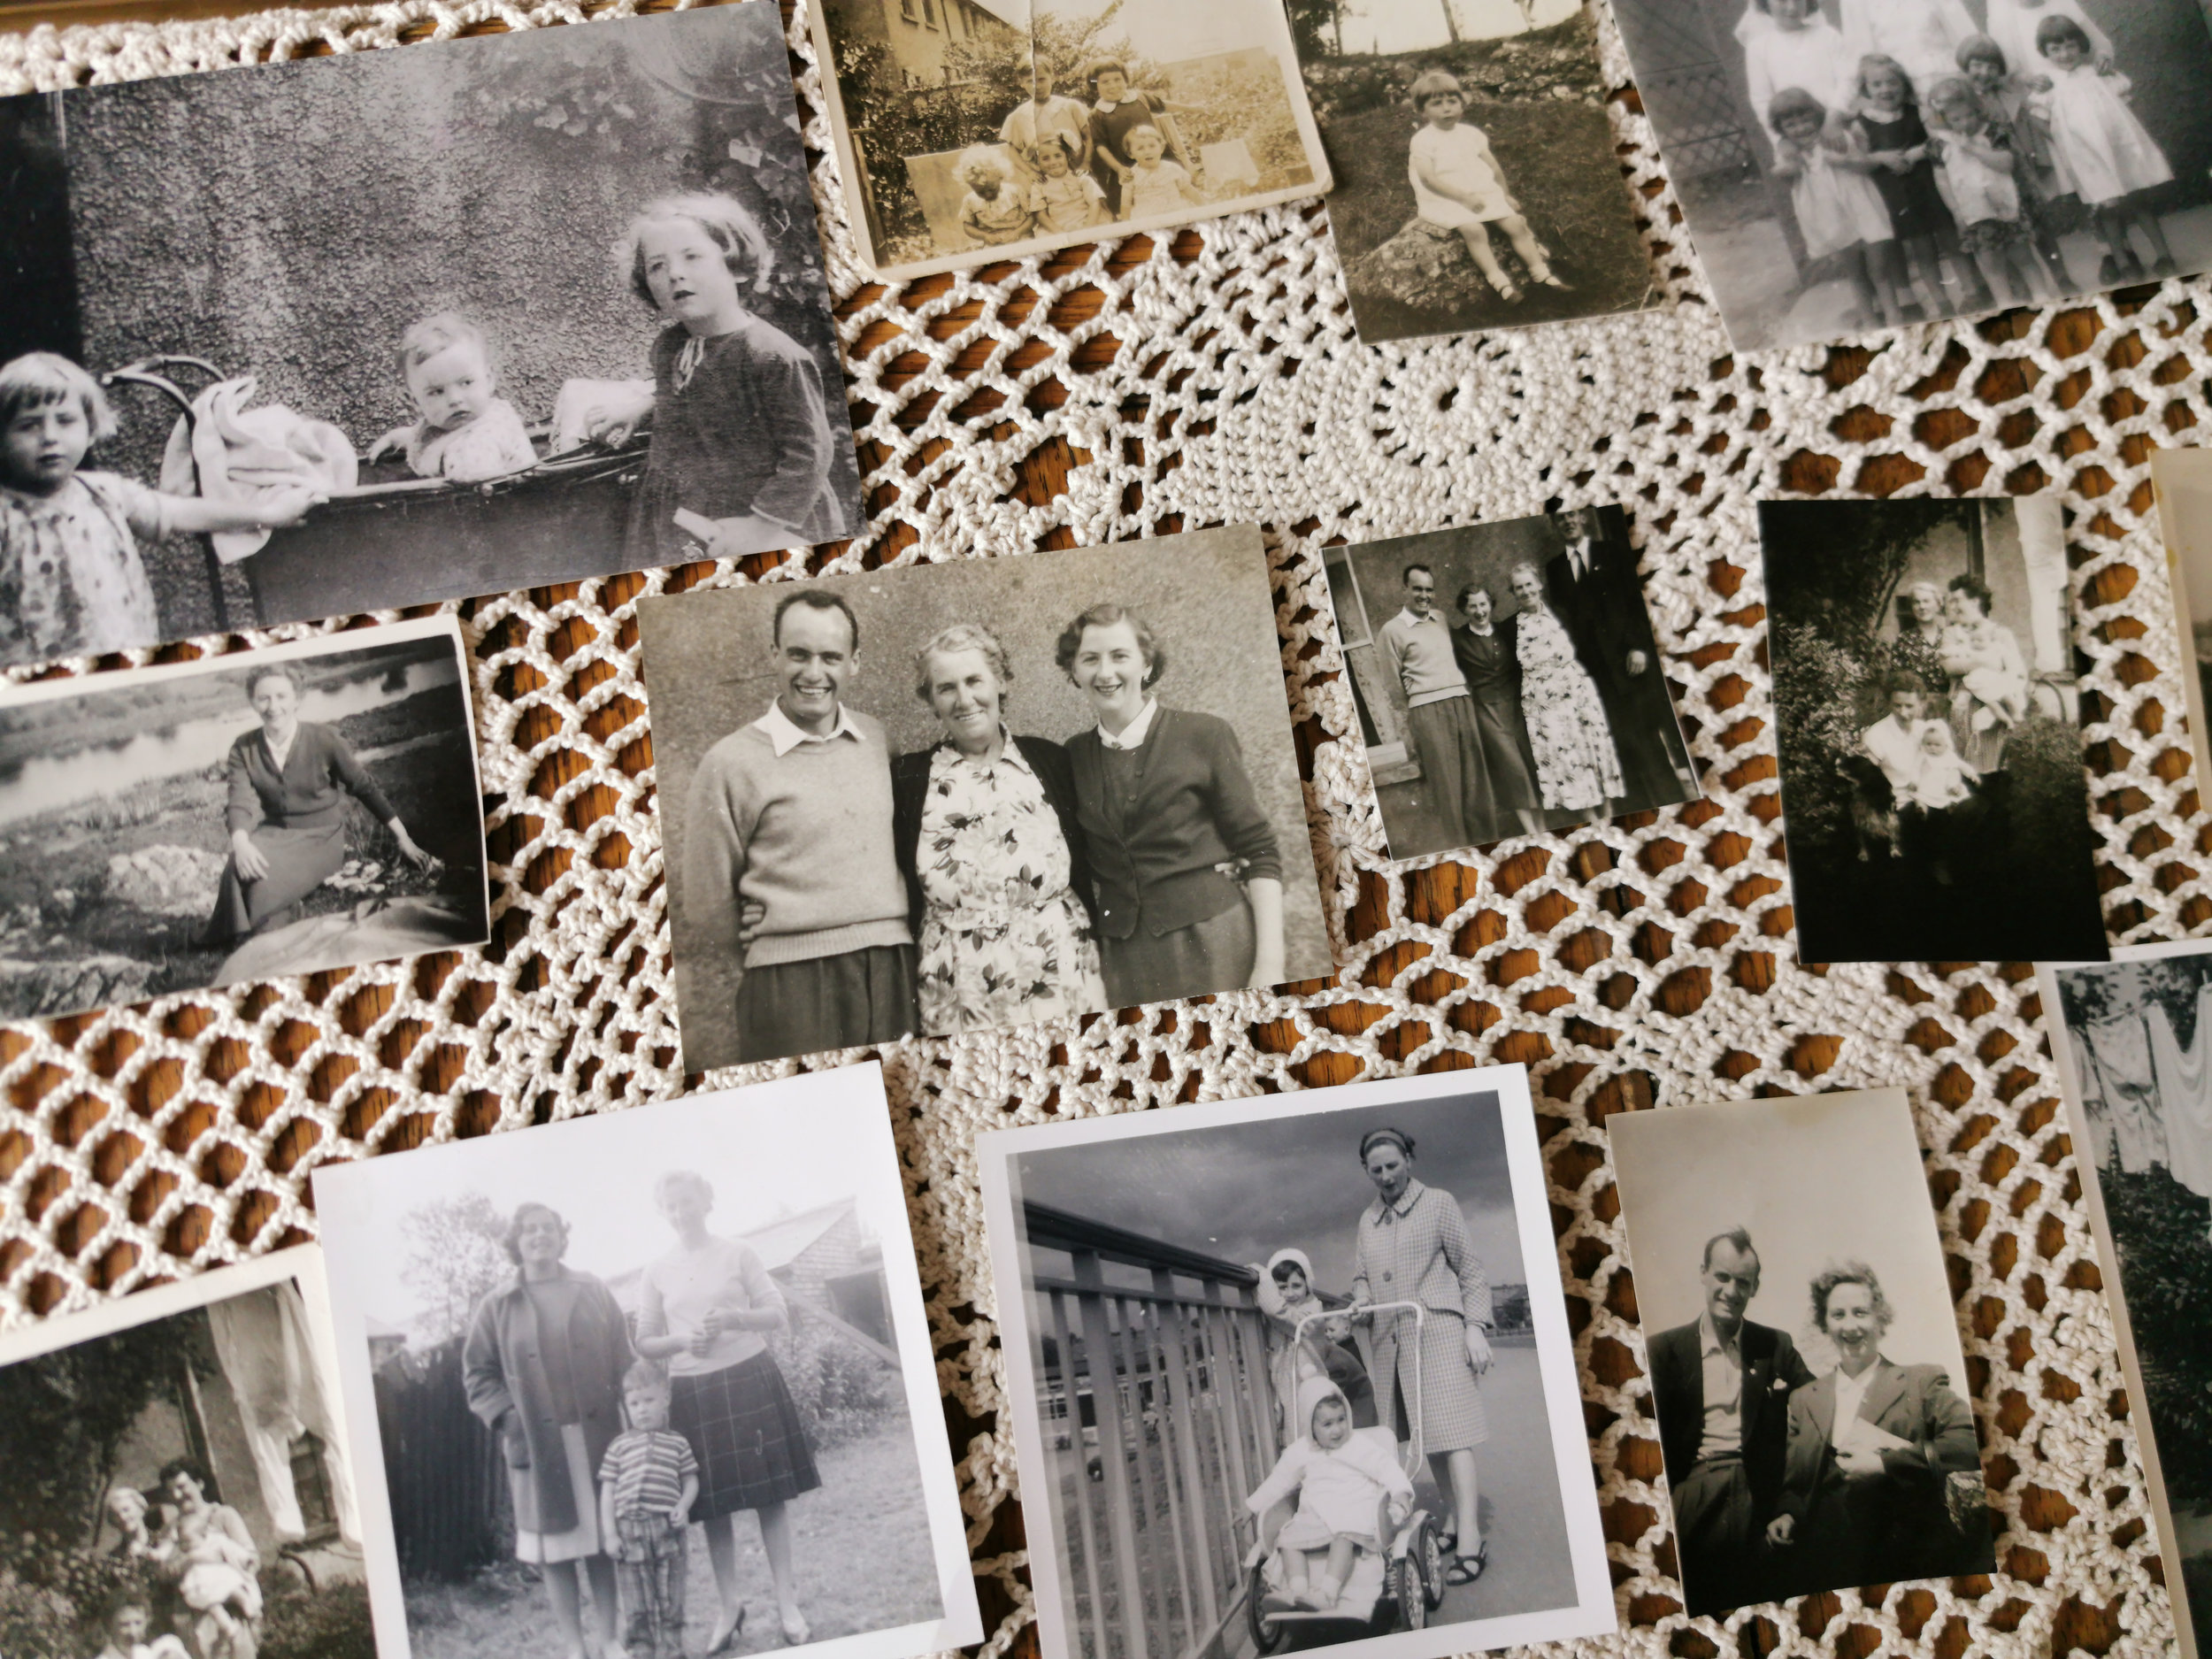 A few days ago I was asked to scan lots of old photos and create